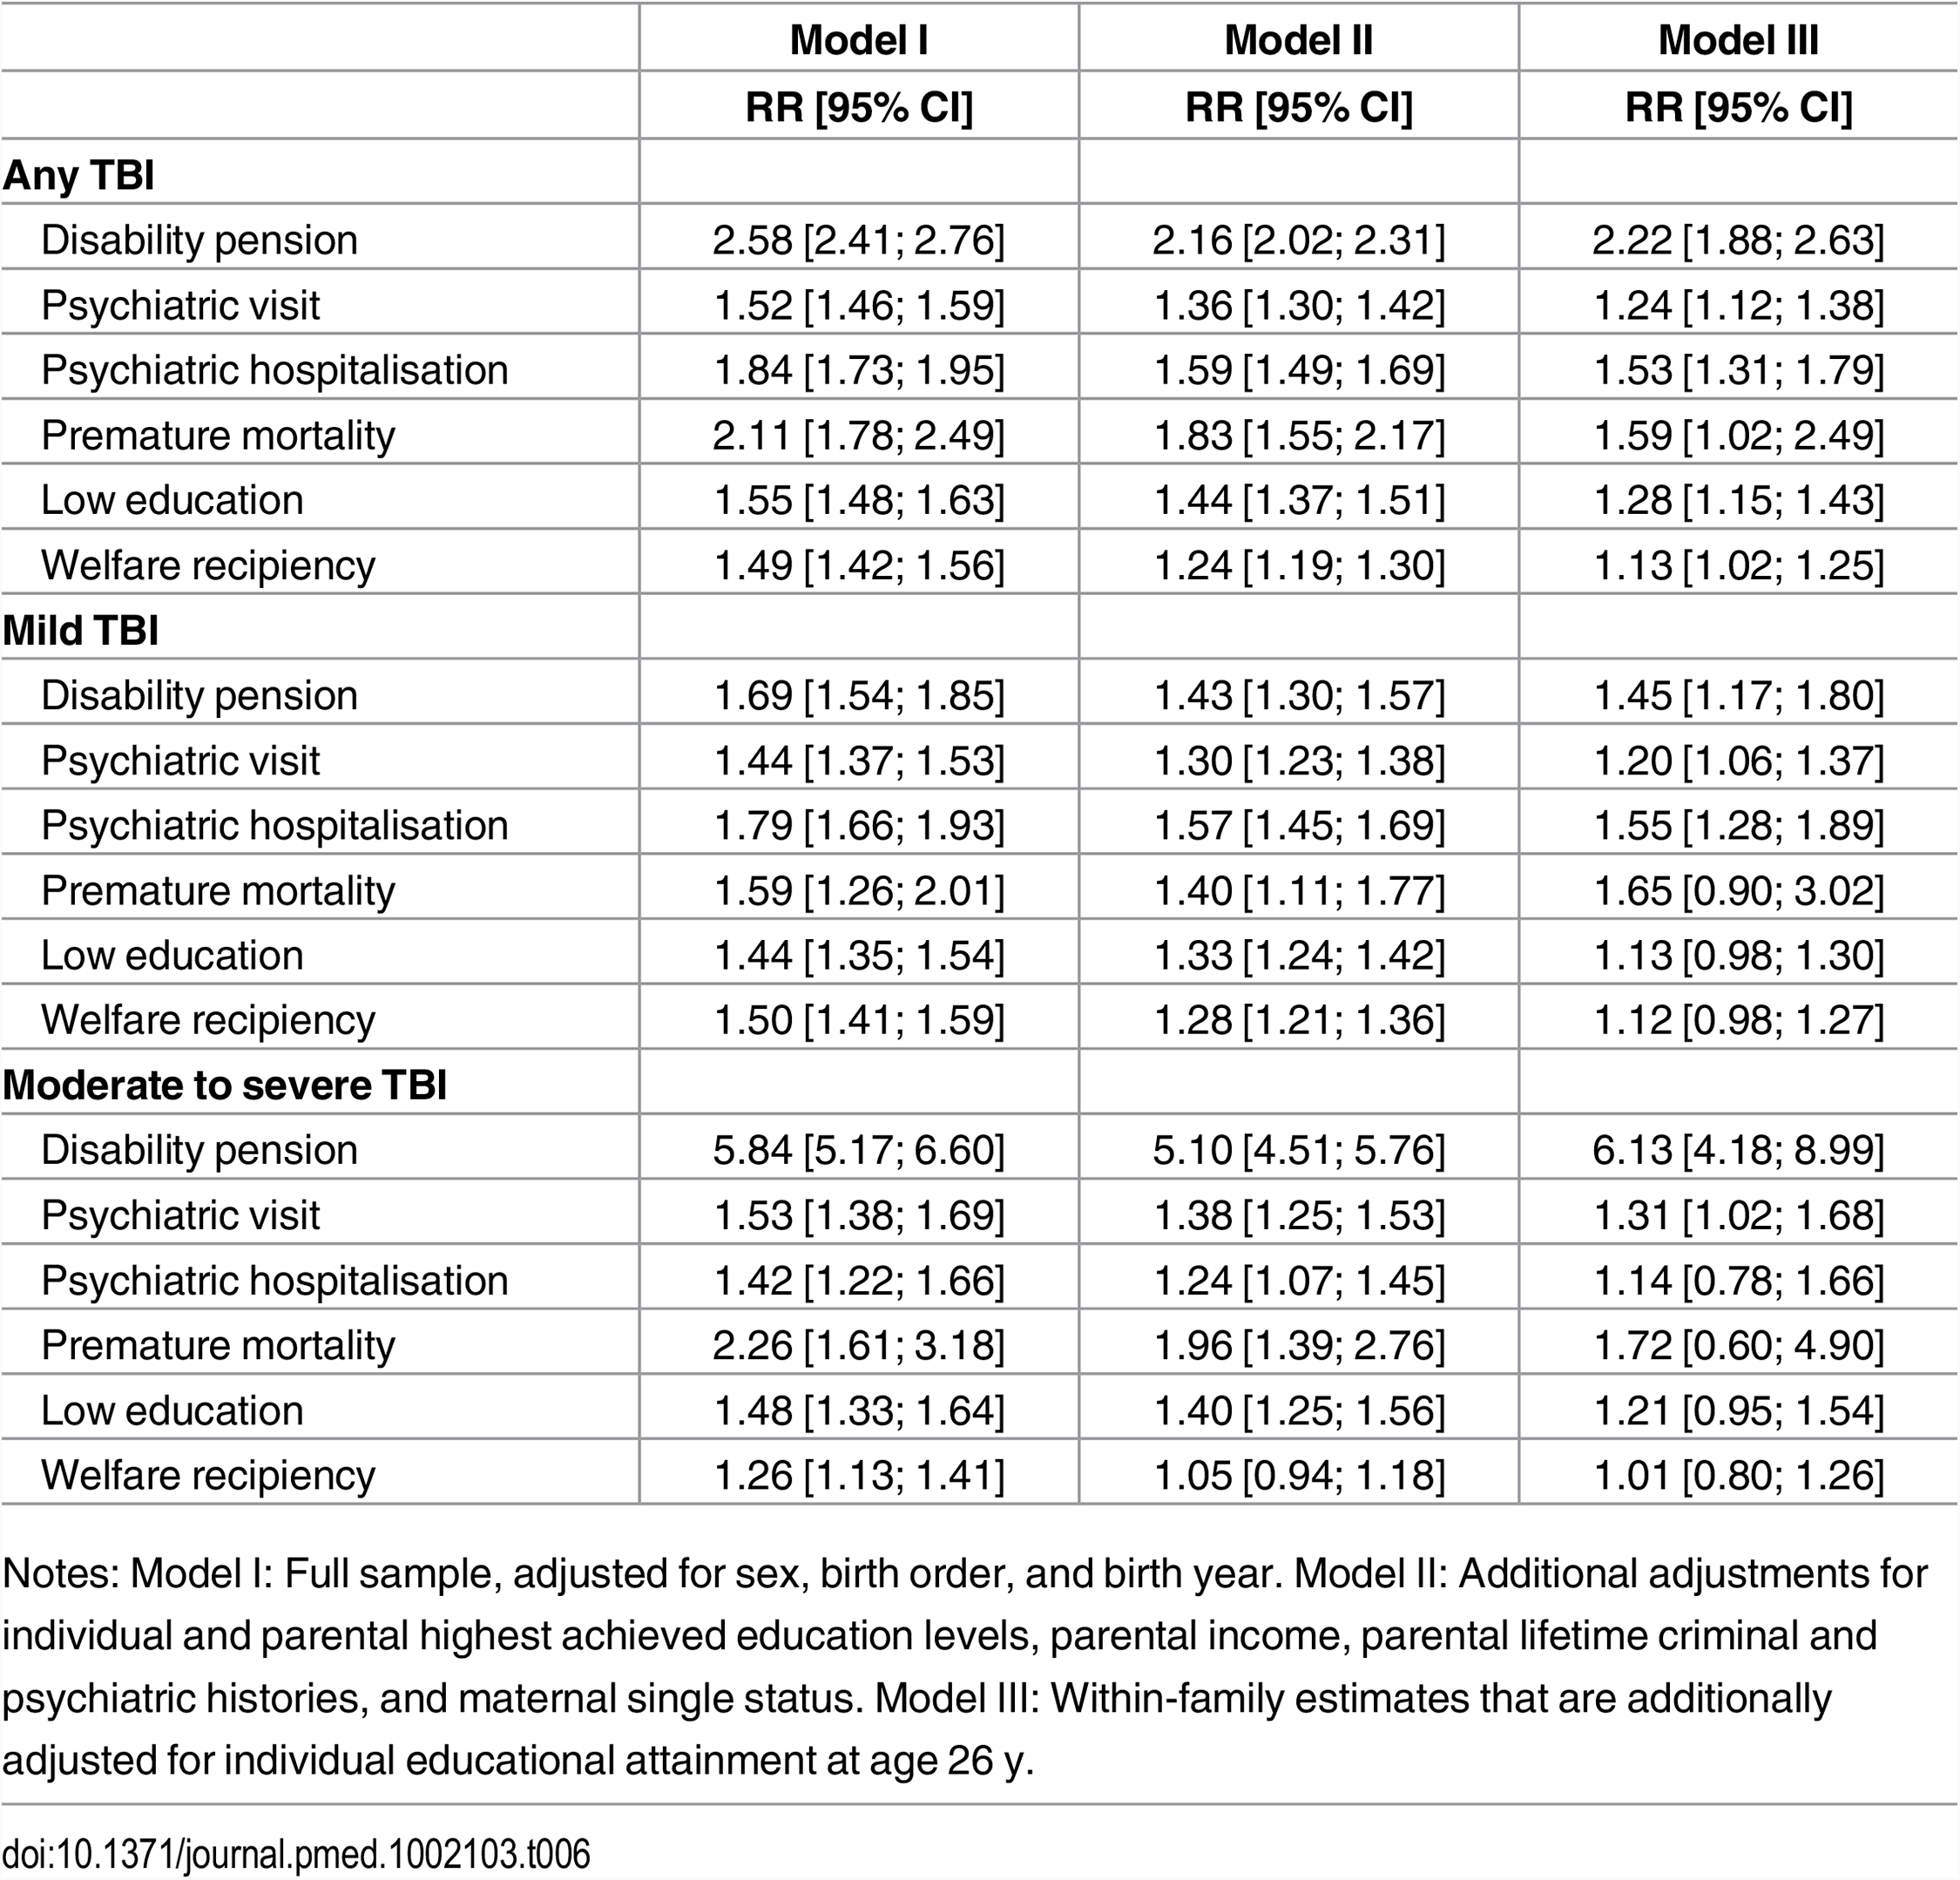 Relative risks (RR) and corresponding 95% confidence intervals (CIs) for the associations between recurrent TBI compared to single-episode TBI, across injury severity, before age 25 y and poor functioning in adulthood.